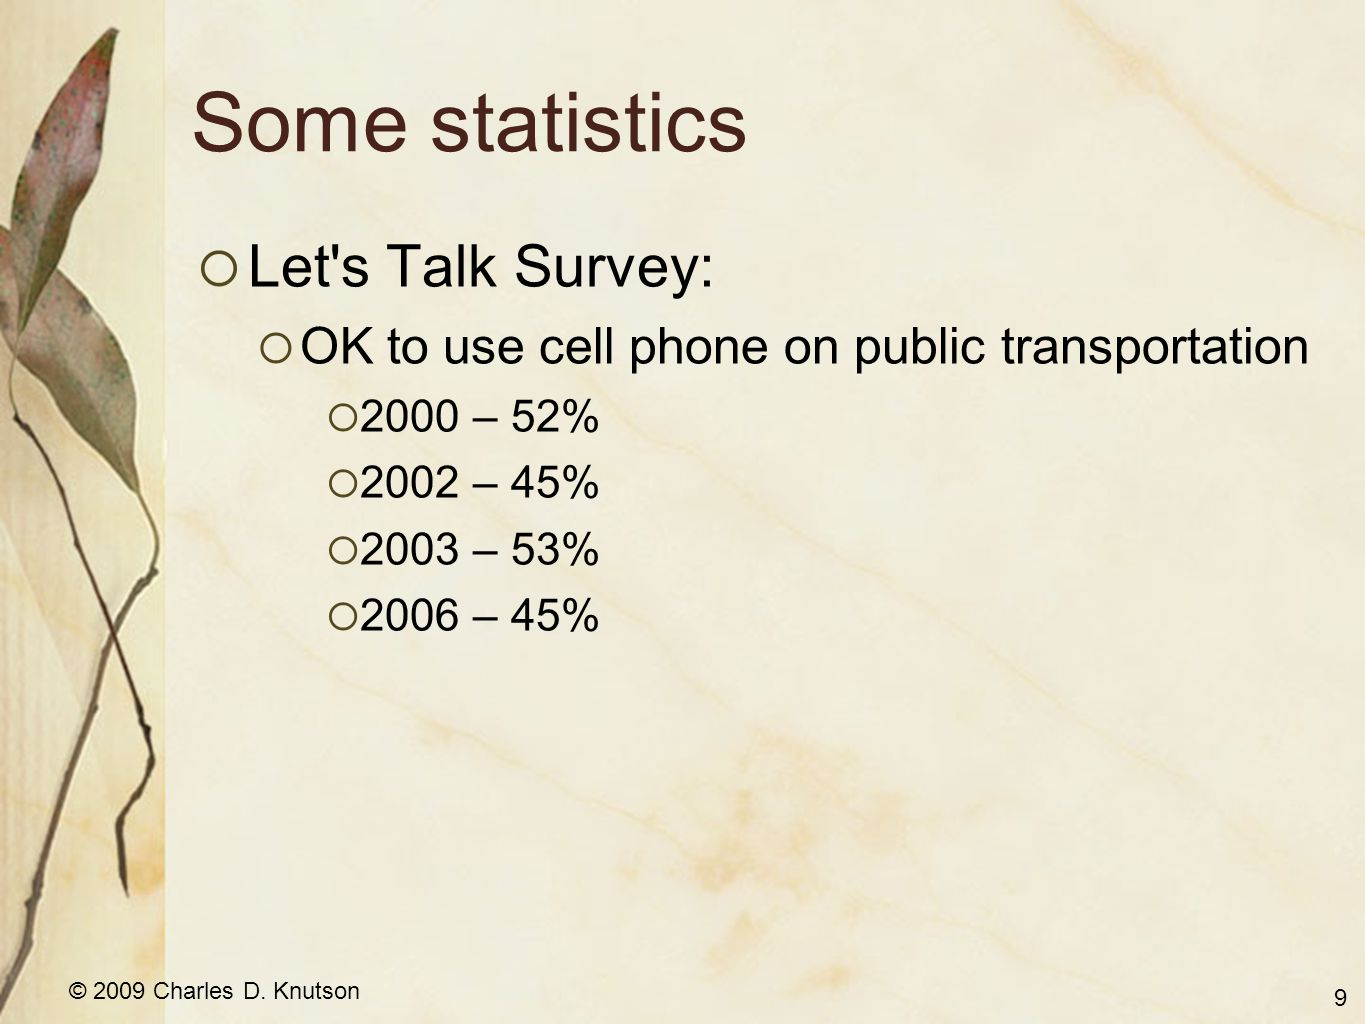 © 2009 Charles D. Knutson Some statistics  Let's Talk Survey:  OK to use cell phone on public transportation  2000 – 52%  2002 – 45%  2003 – 53%